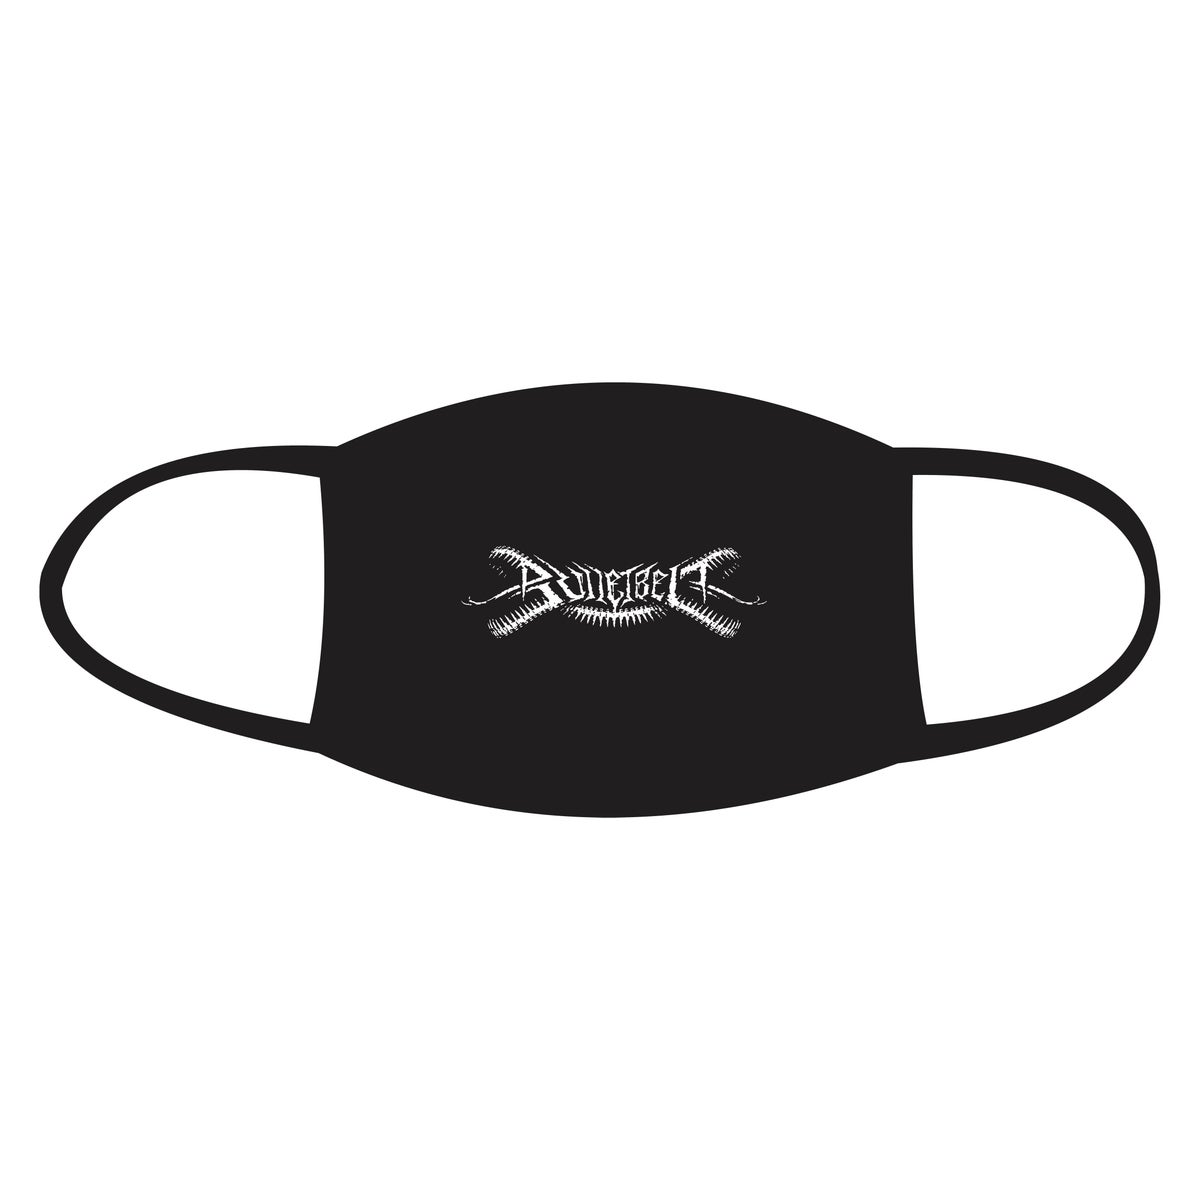 Image of Bulletbelt Logo Mask